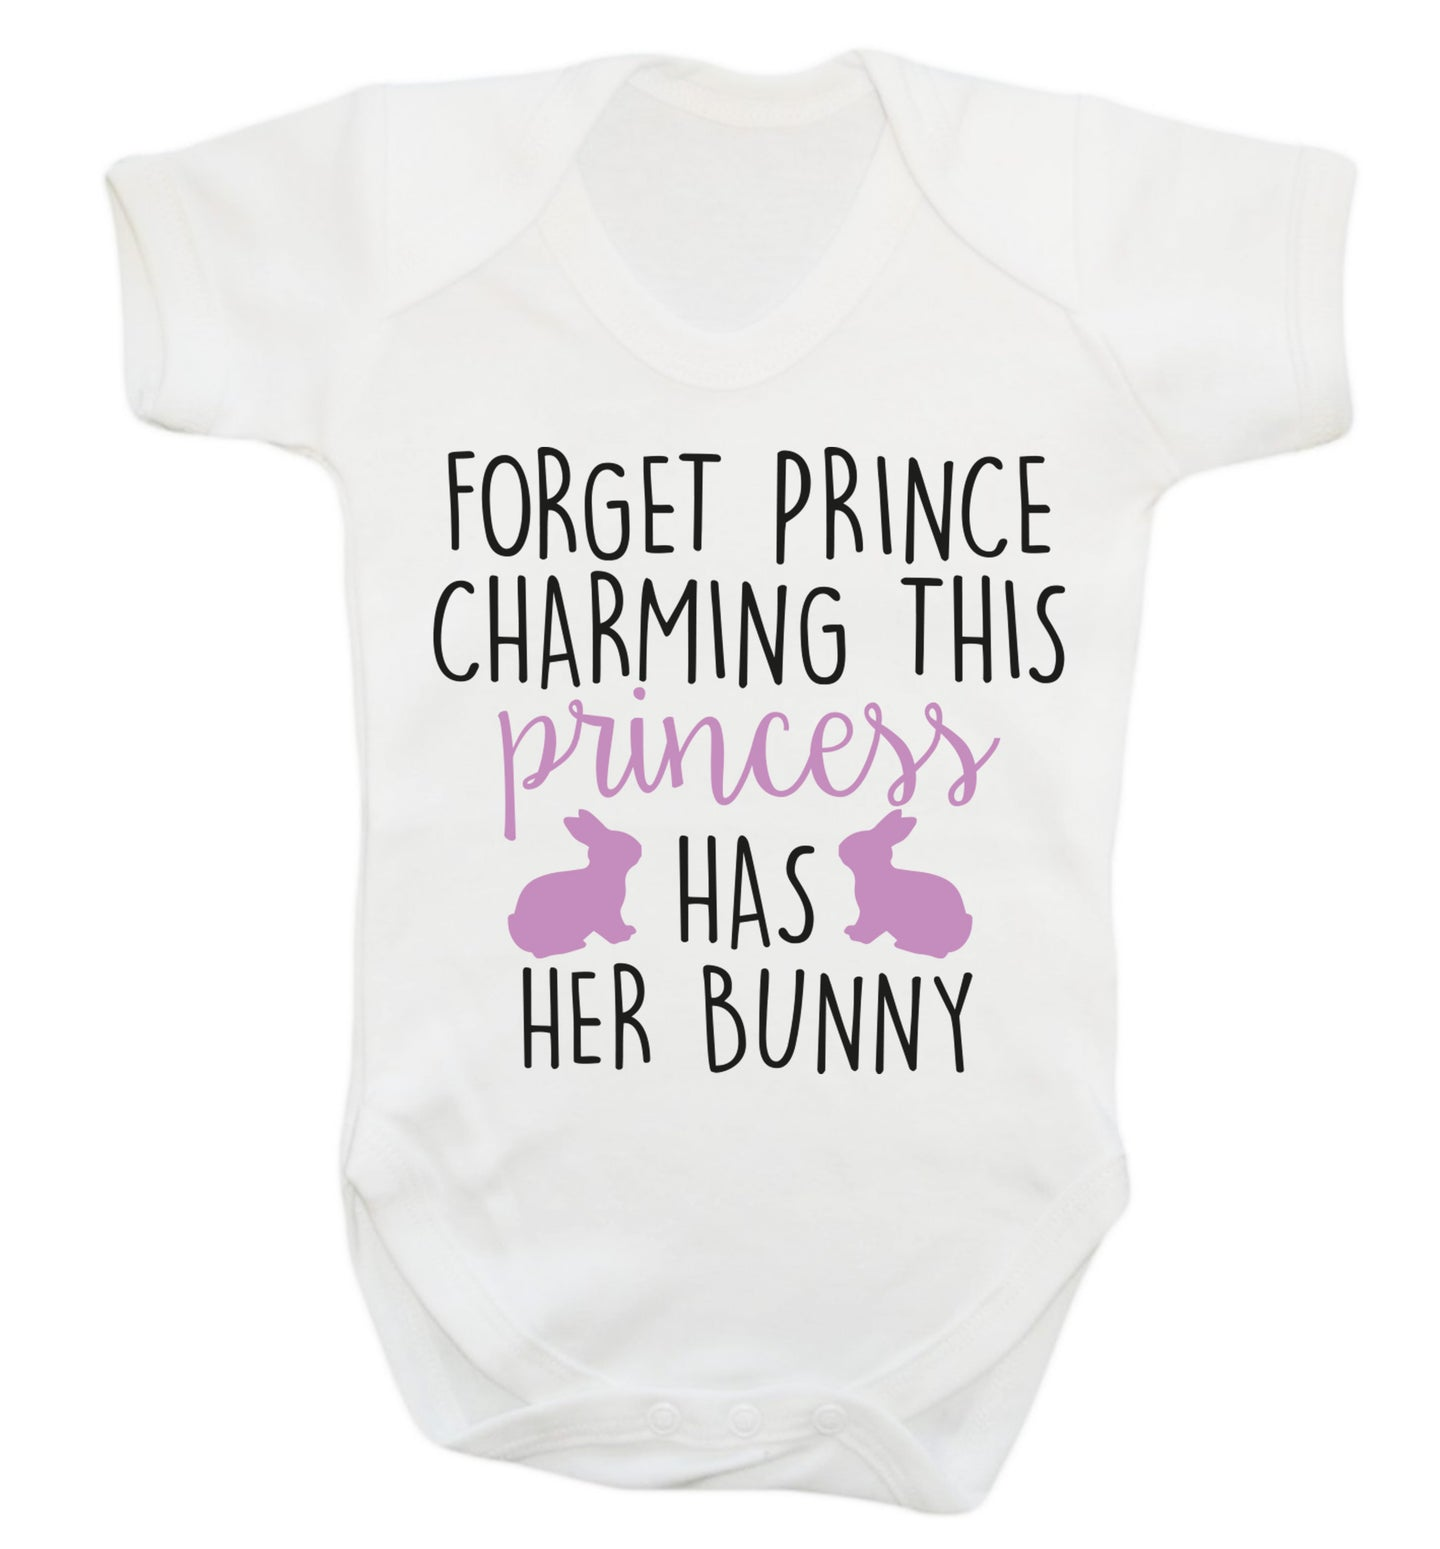 Forget prince charming this princess has her bunny Baby Vest white 18-24 months